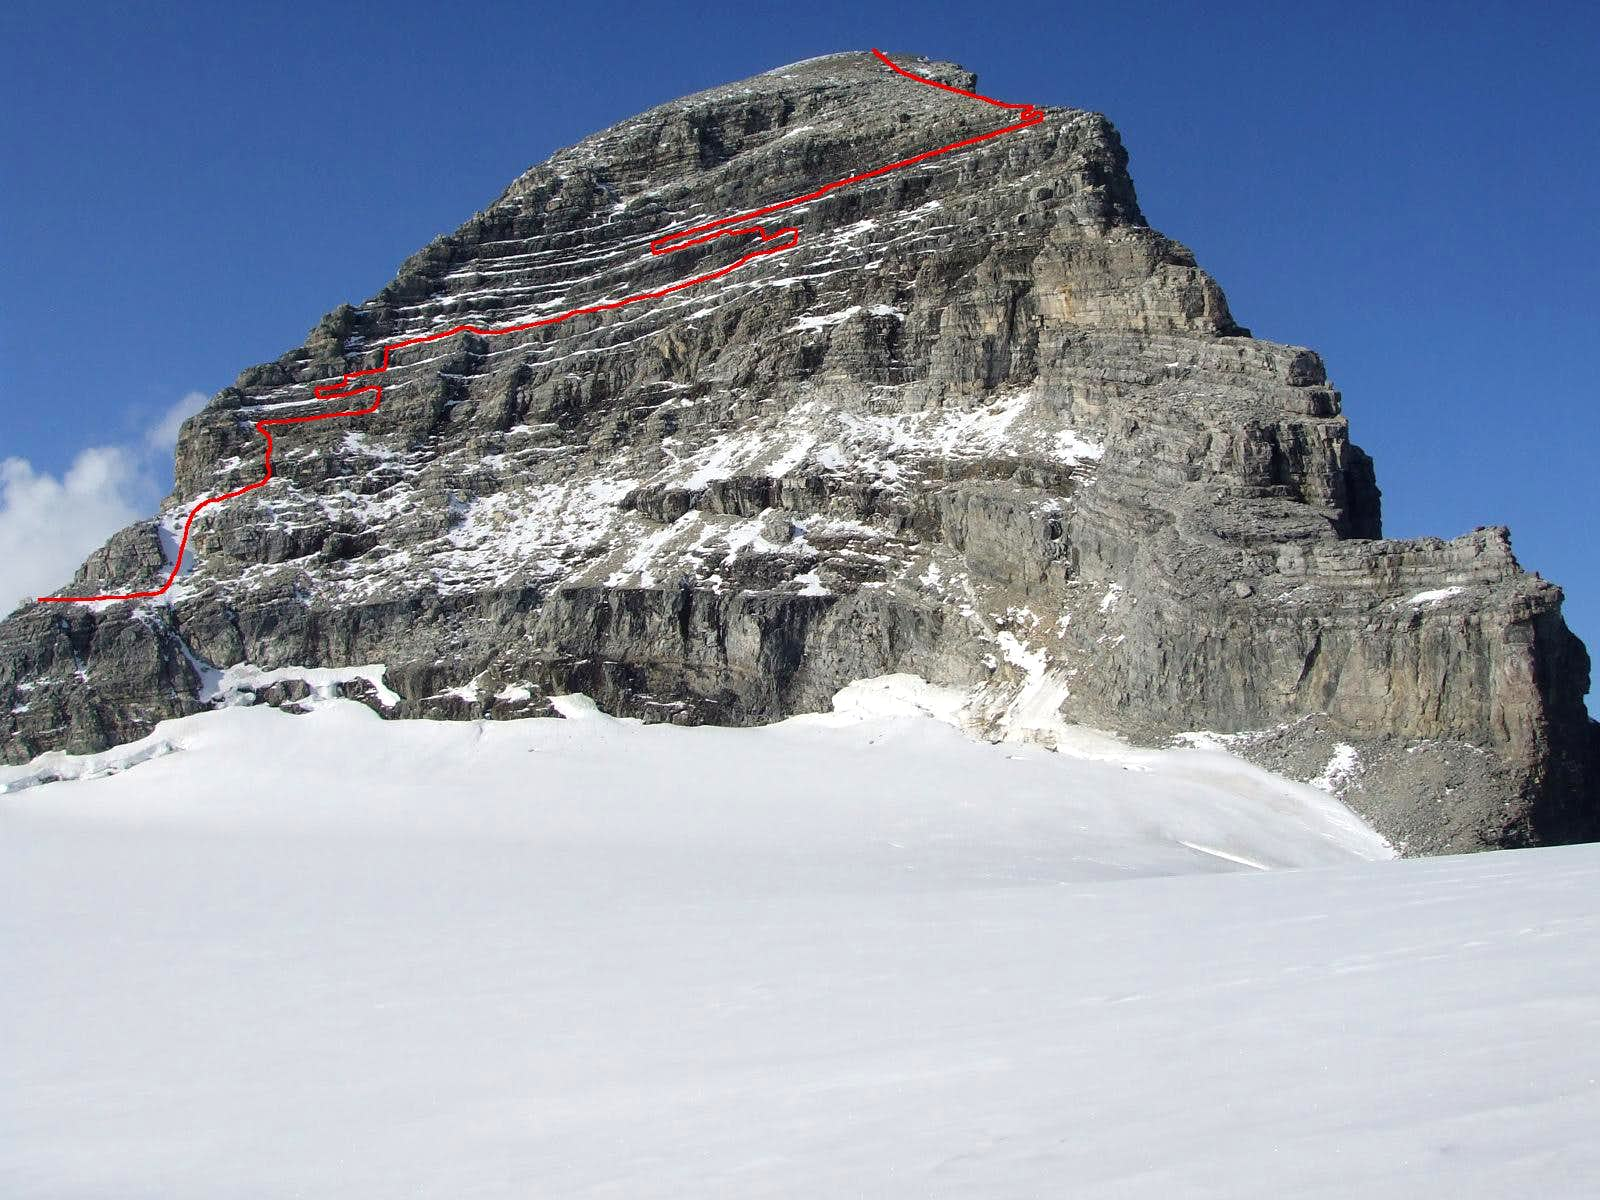 Third Expedition to Mount Sir Alexander: Success and Epic